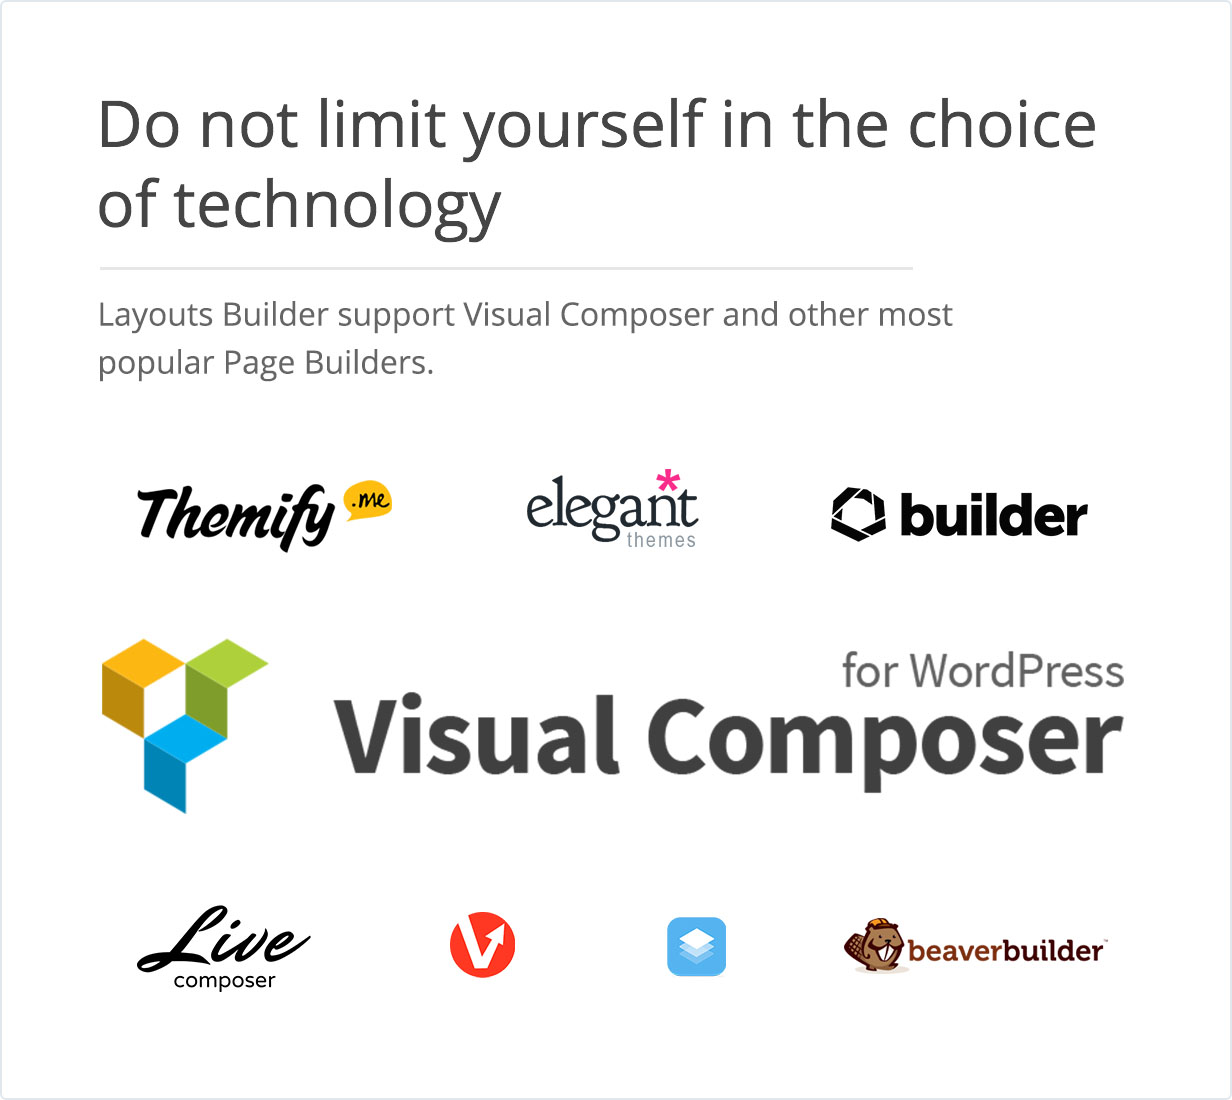 Do not limit yourself in the choice of technology. Layouts Builder support Visual Composer and other most popular Page Builders.